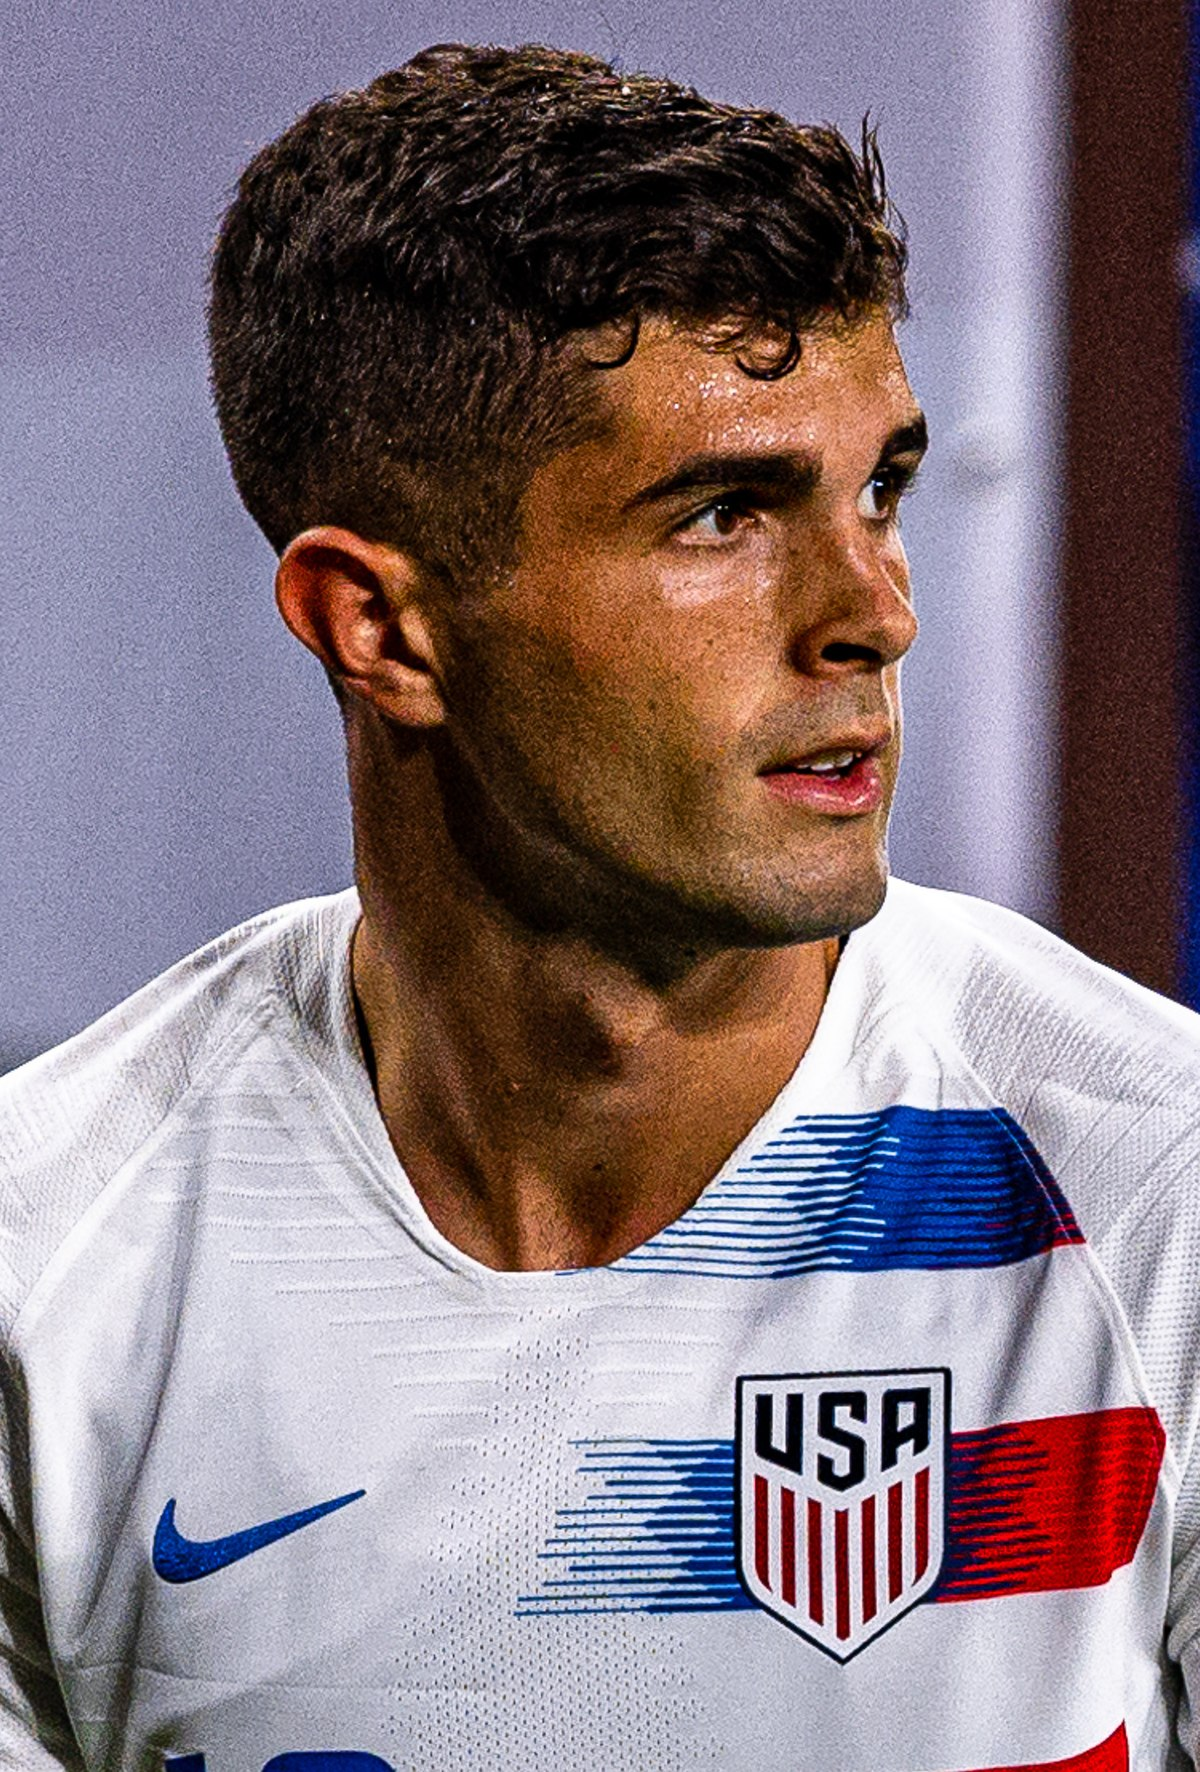 Pulisic 1st American man to play in a Champions League final